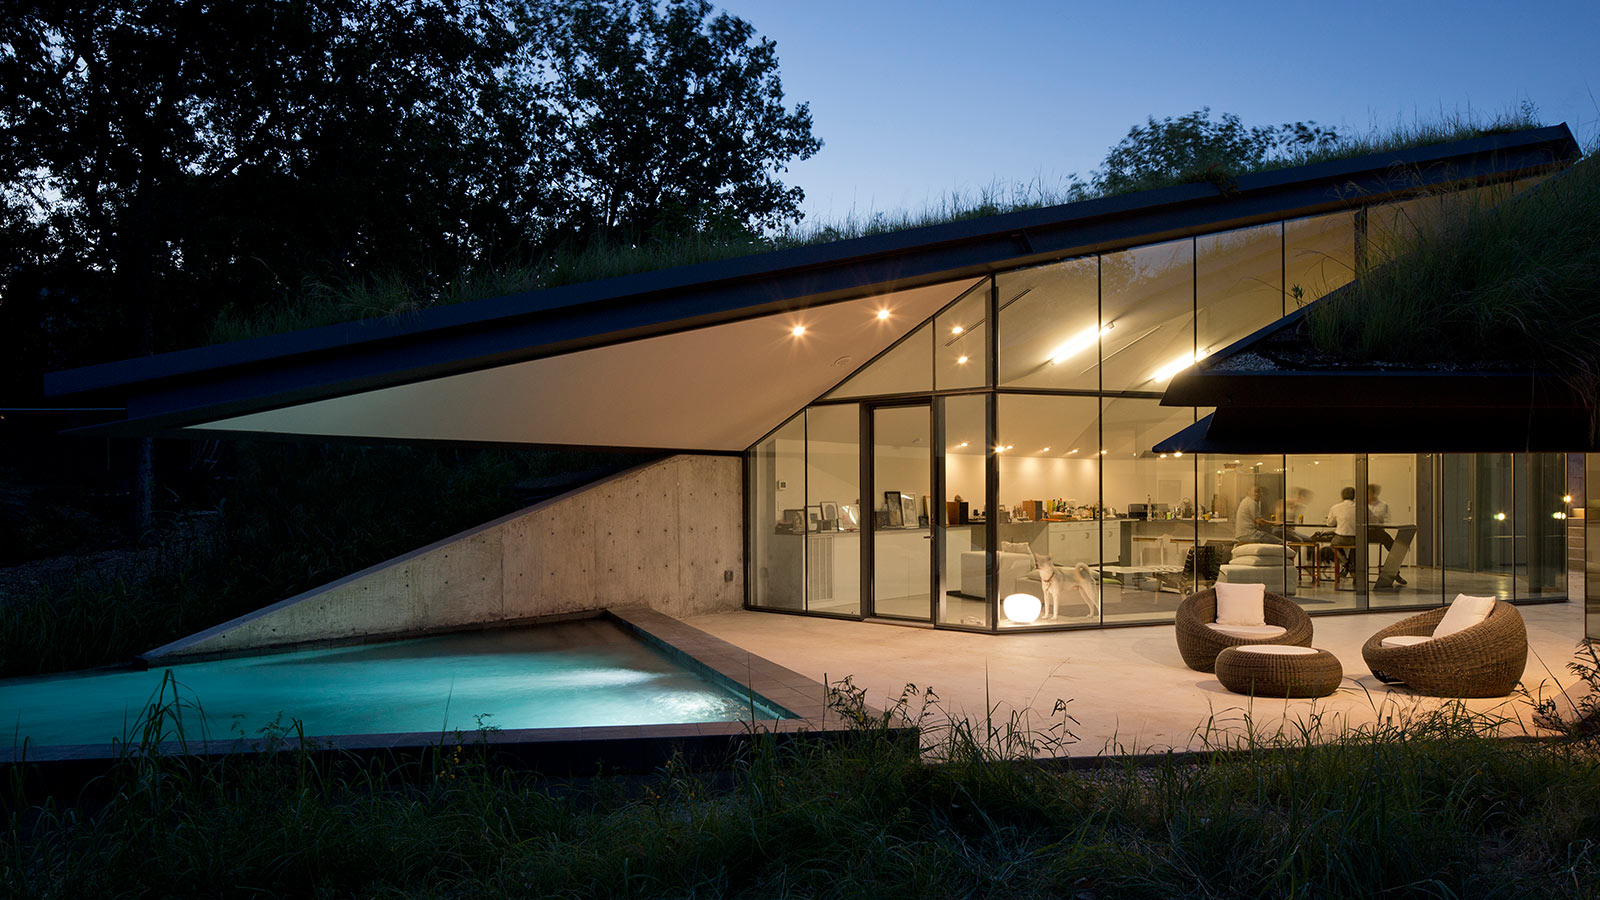 Smart Home Design From Modern Homes Design: Edgeland Residence: A Futuristic House With A Smart Pool